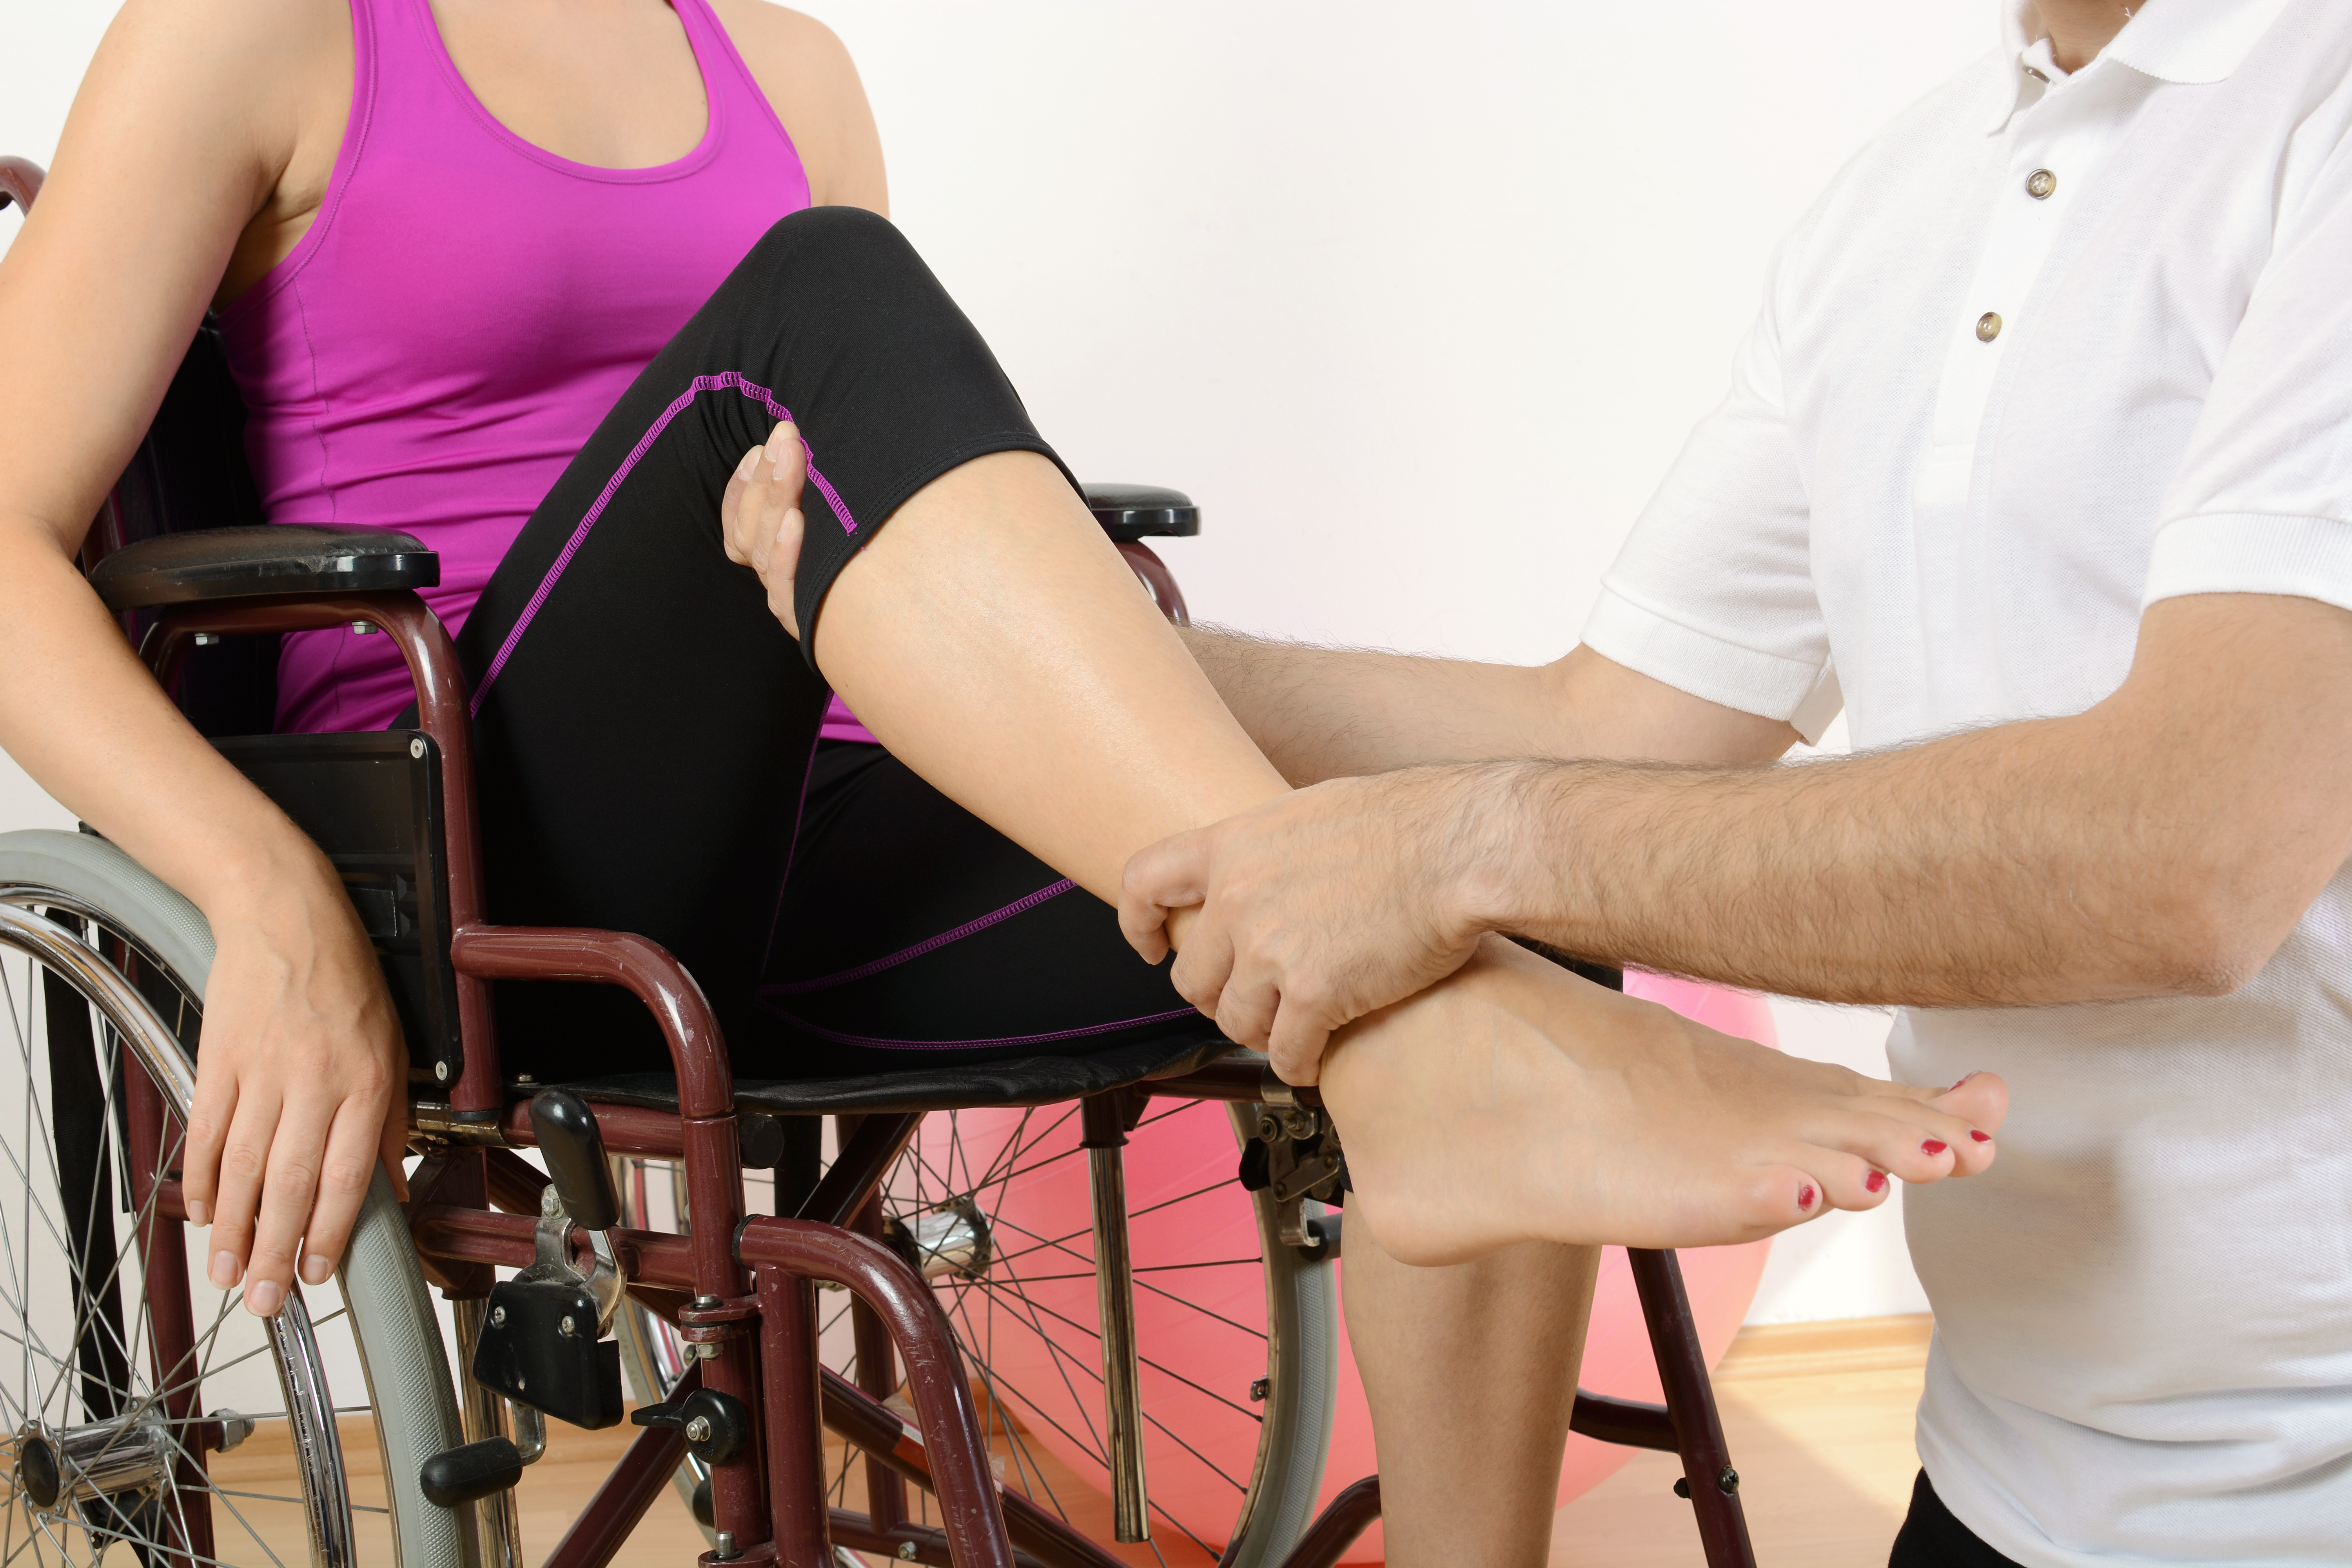 Hausbesuche Physiotherapie Basel: Physiotherapie santewell, 4055 Basel, Domizilbehandlung Basel